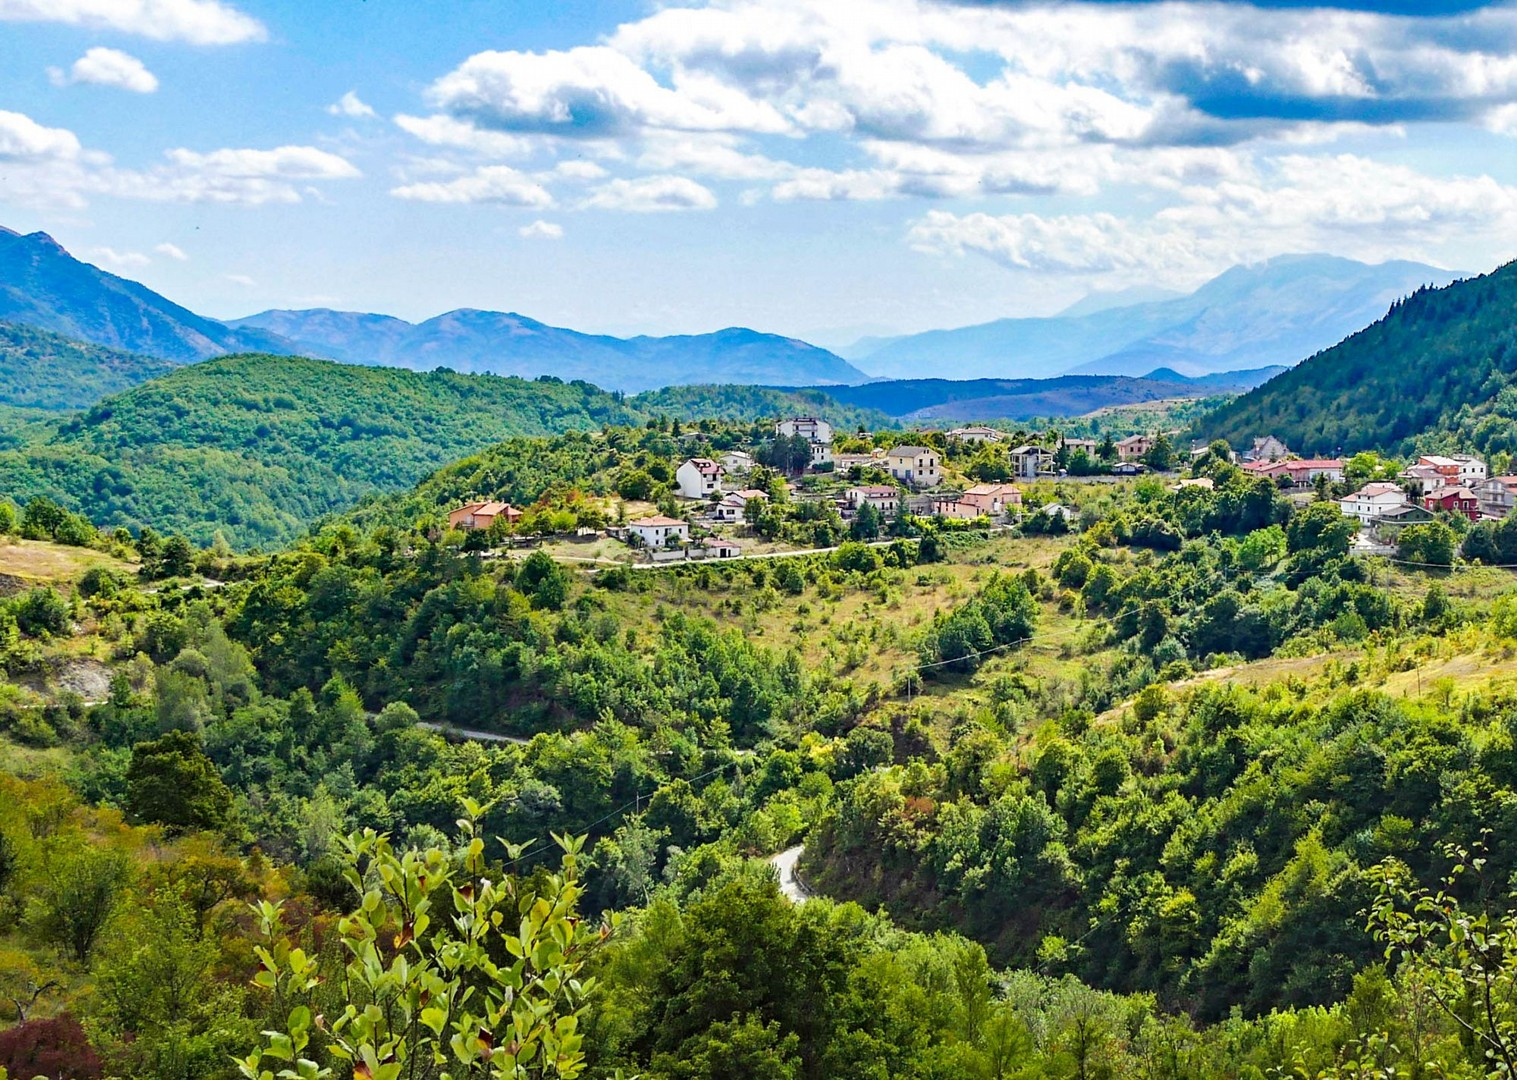 umbria-mountain-village-guided-road-cycling-trip-holiday.jpg - NEW! Italy - Coast to Coast - L'Adriatico al Tirreno - Road Cycling